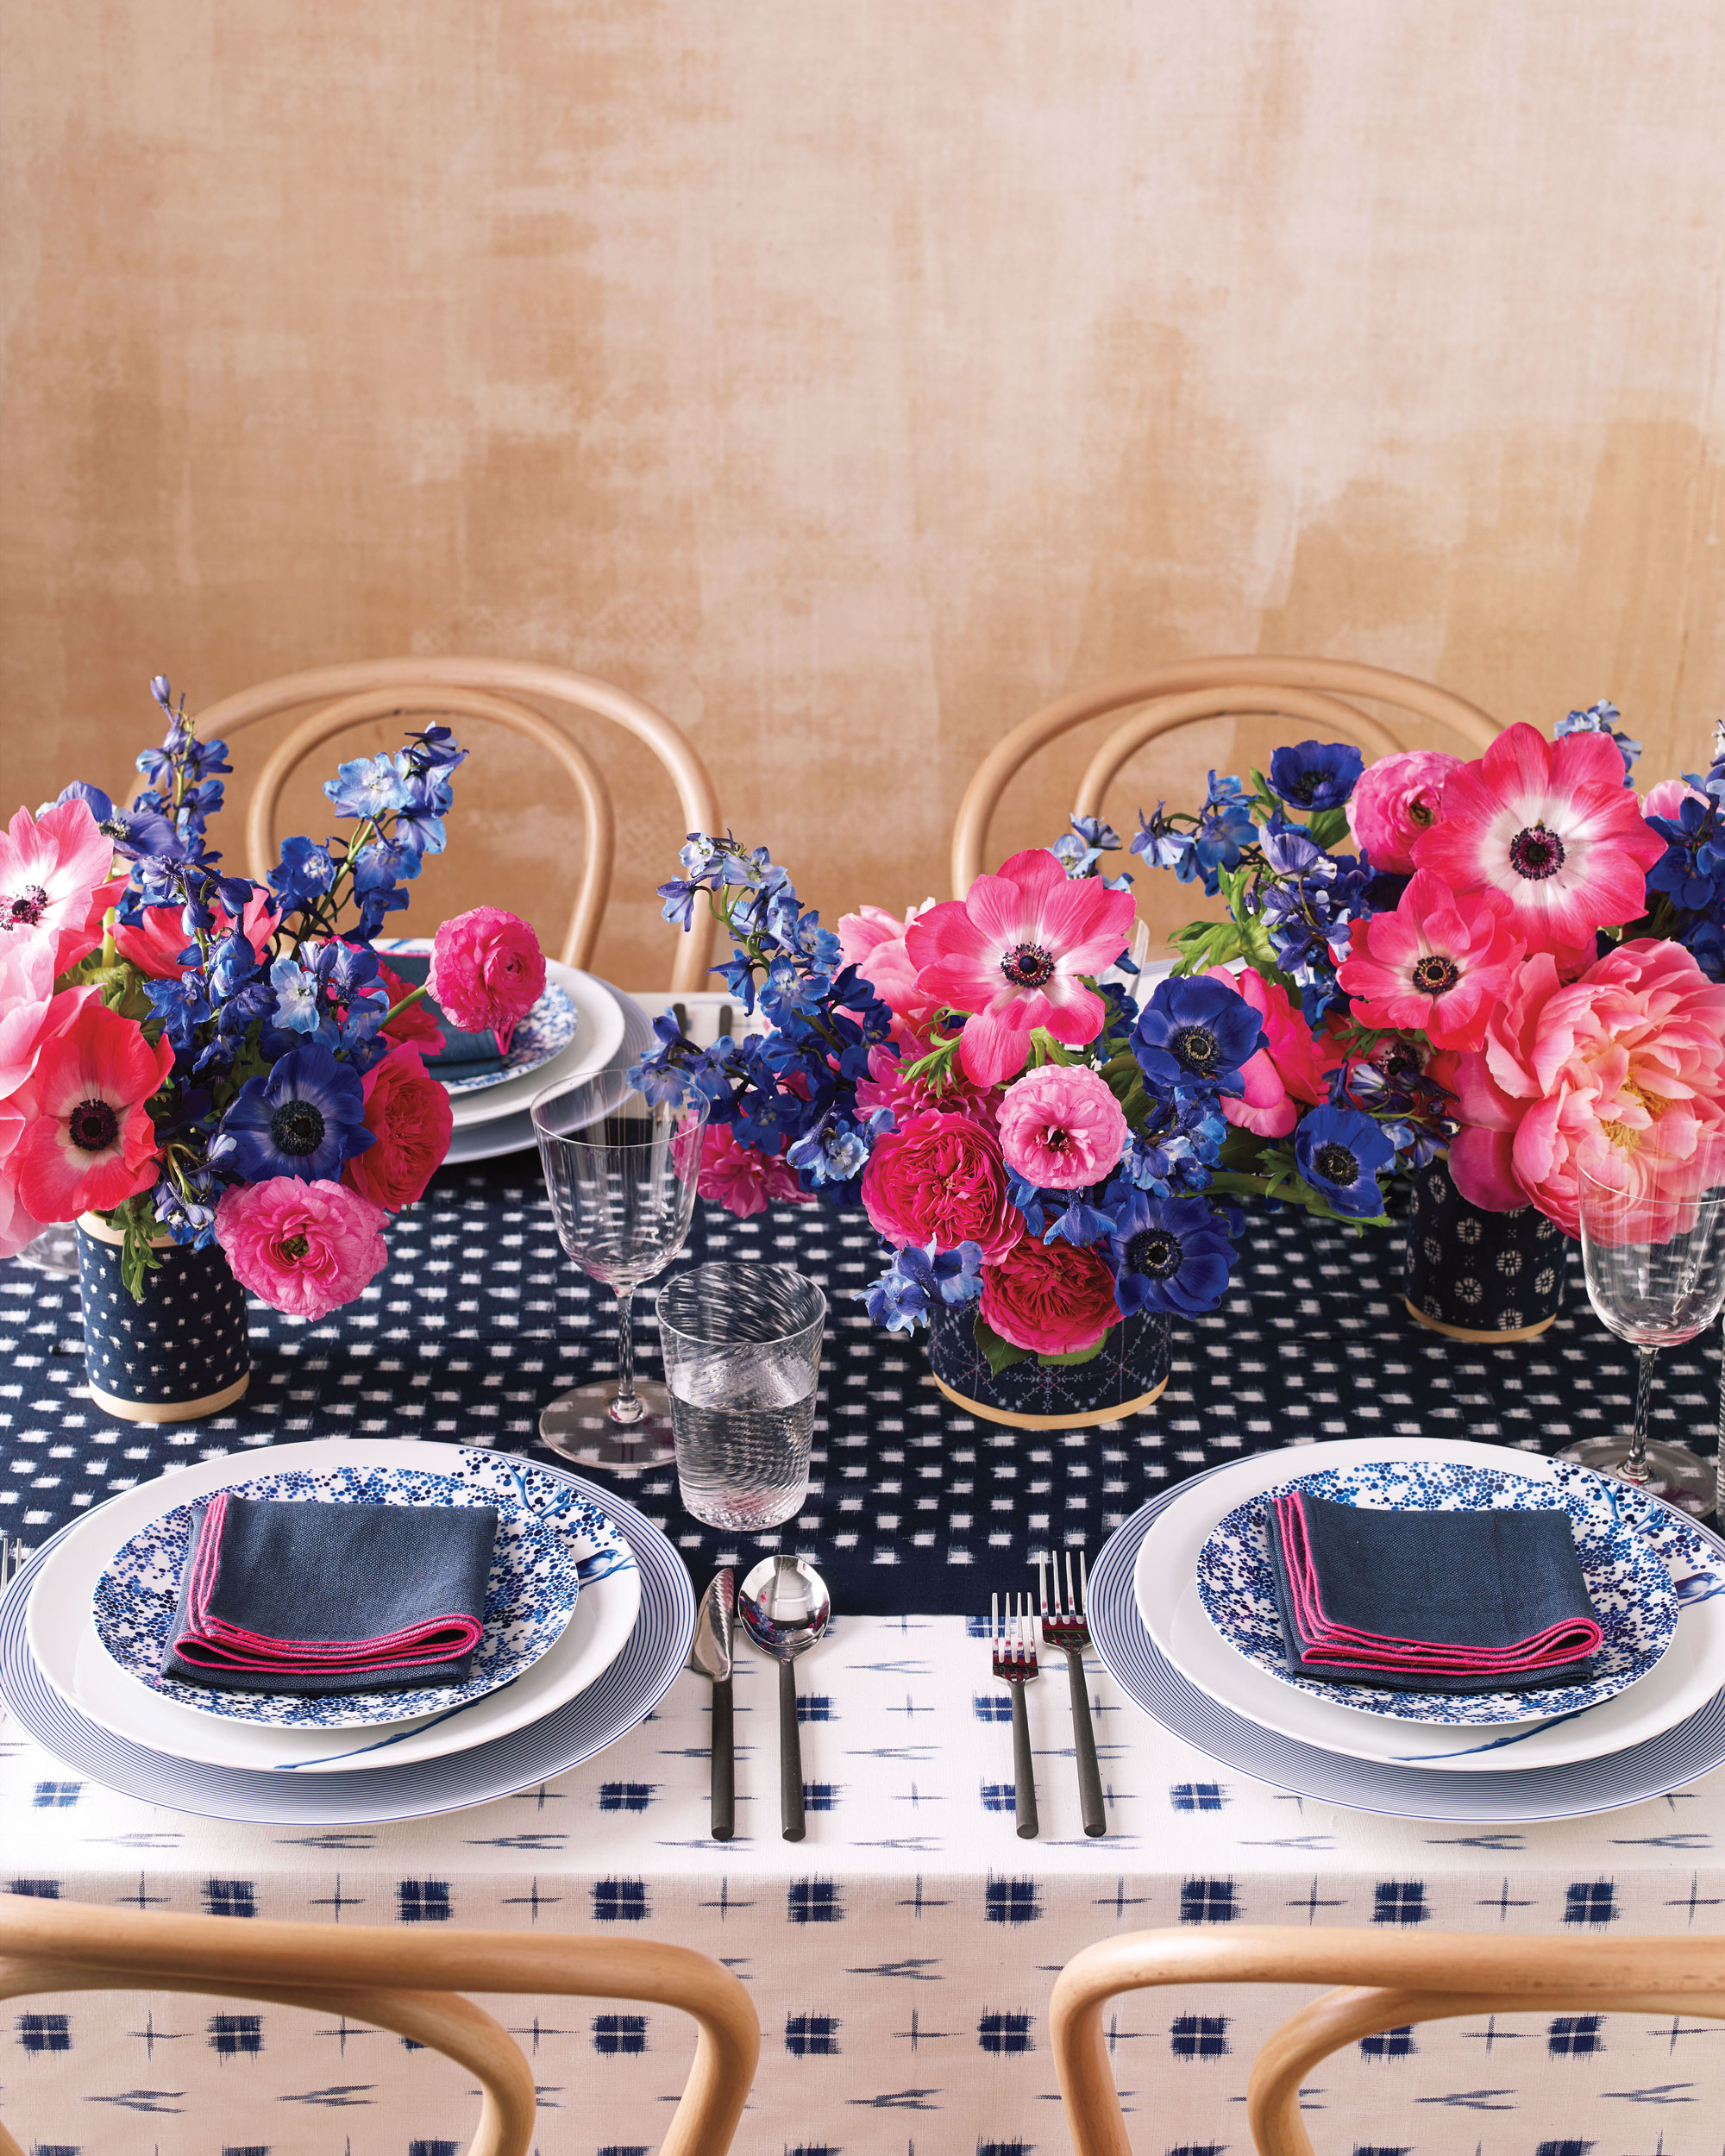 mmwd110739-expert-advice-colorful-table-setting.jpg